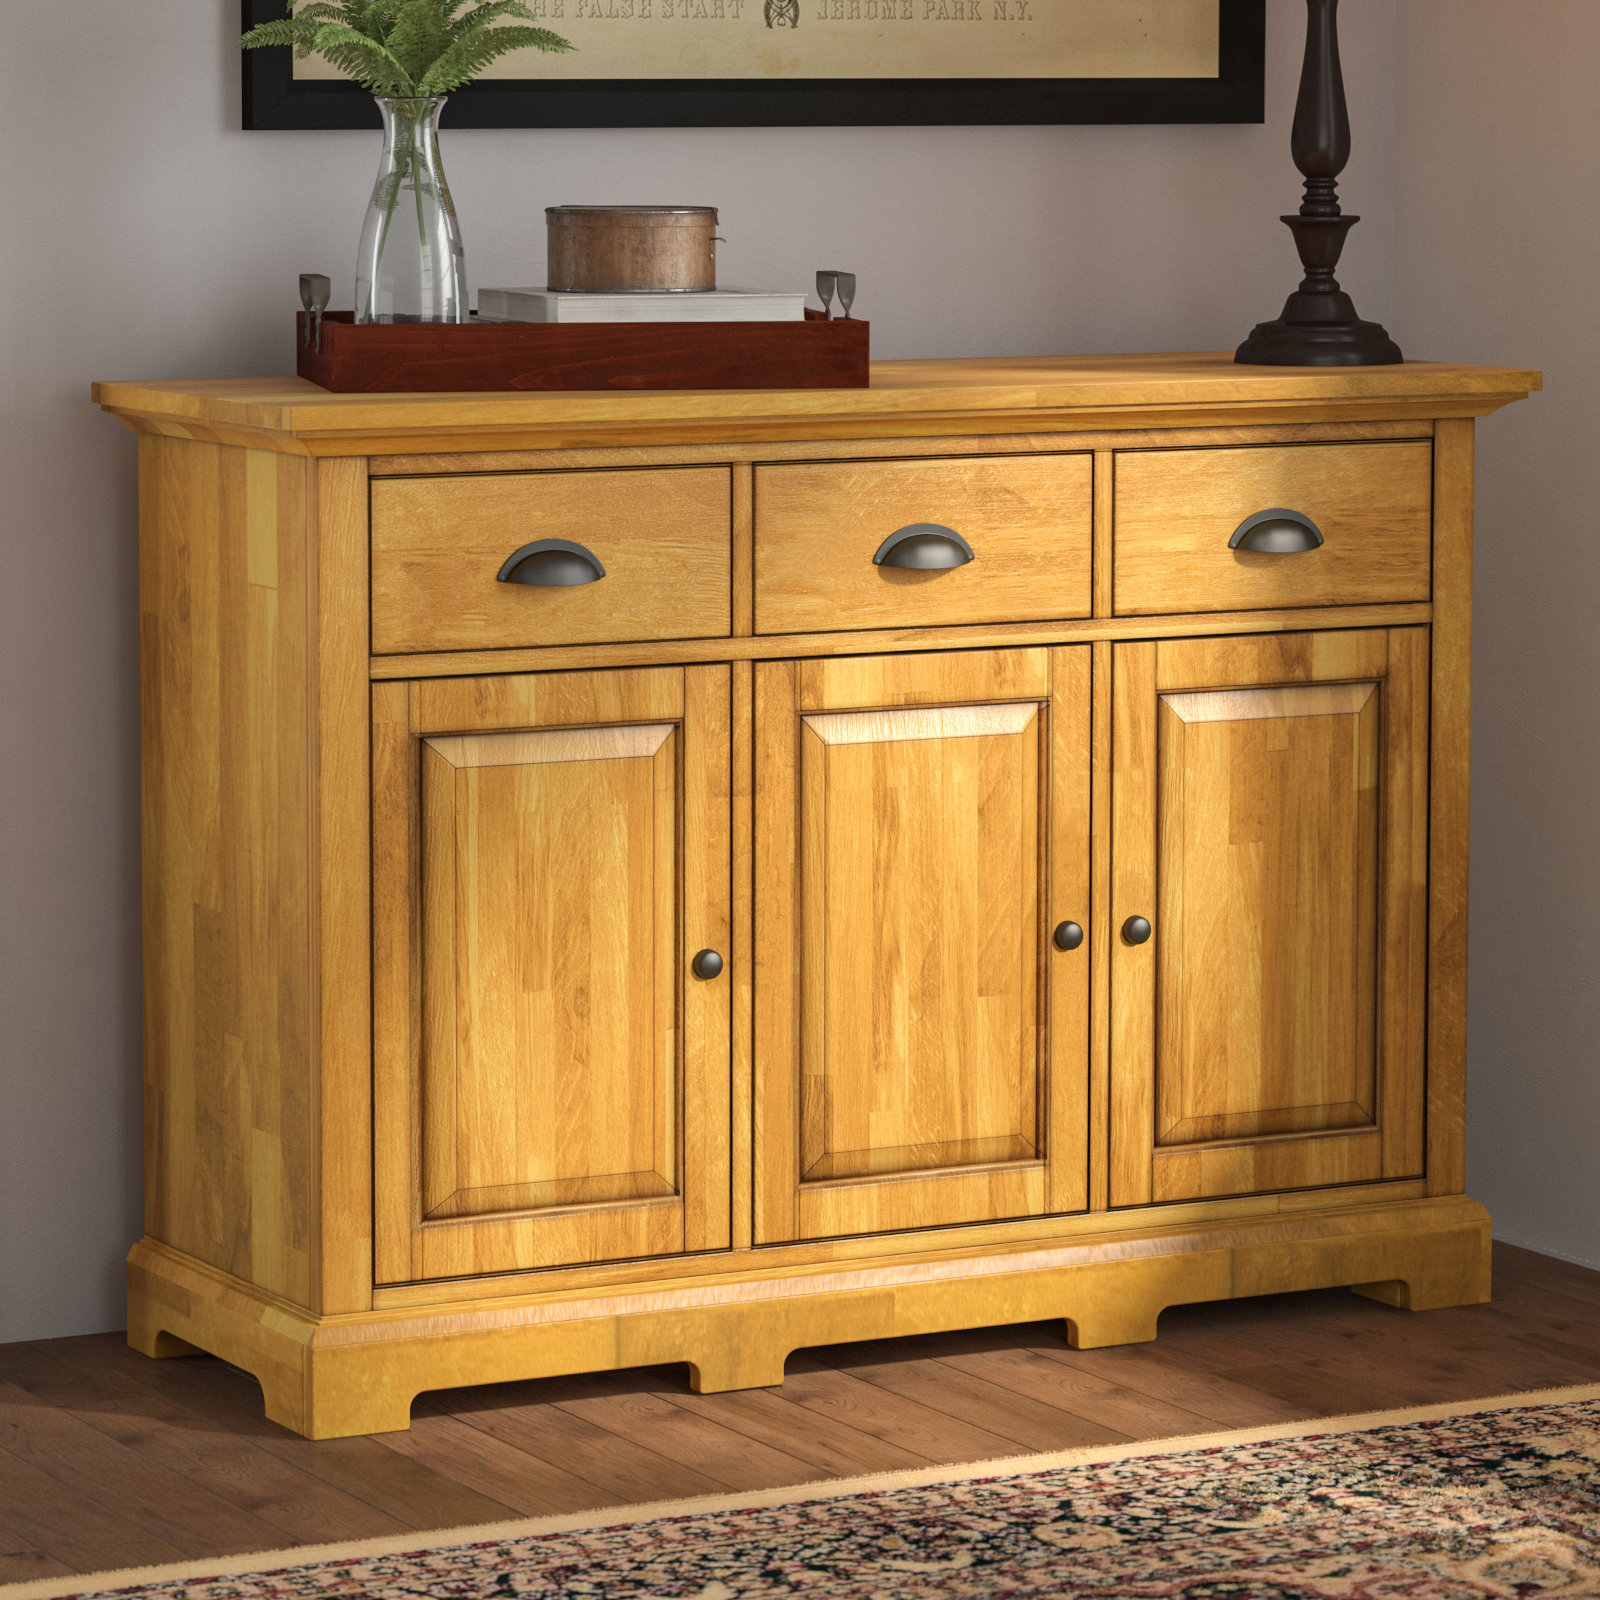 Asian Sideboard | Wayfair Throughout Seven Seas Asian Sideboards (View 8 of 23)